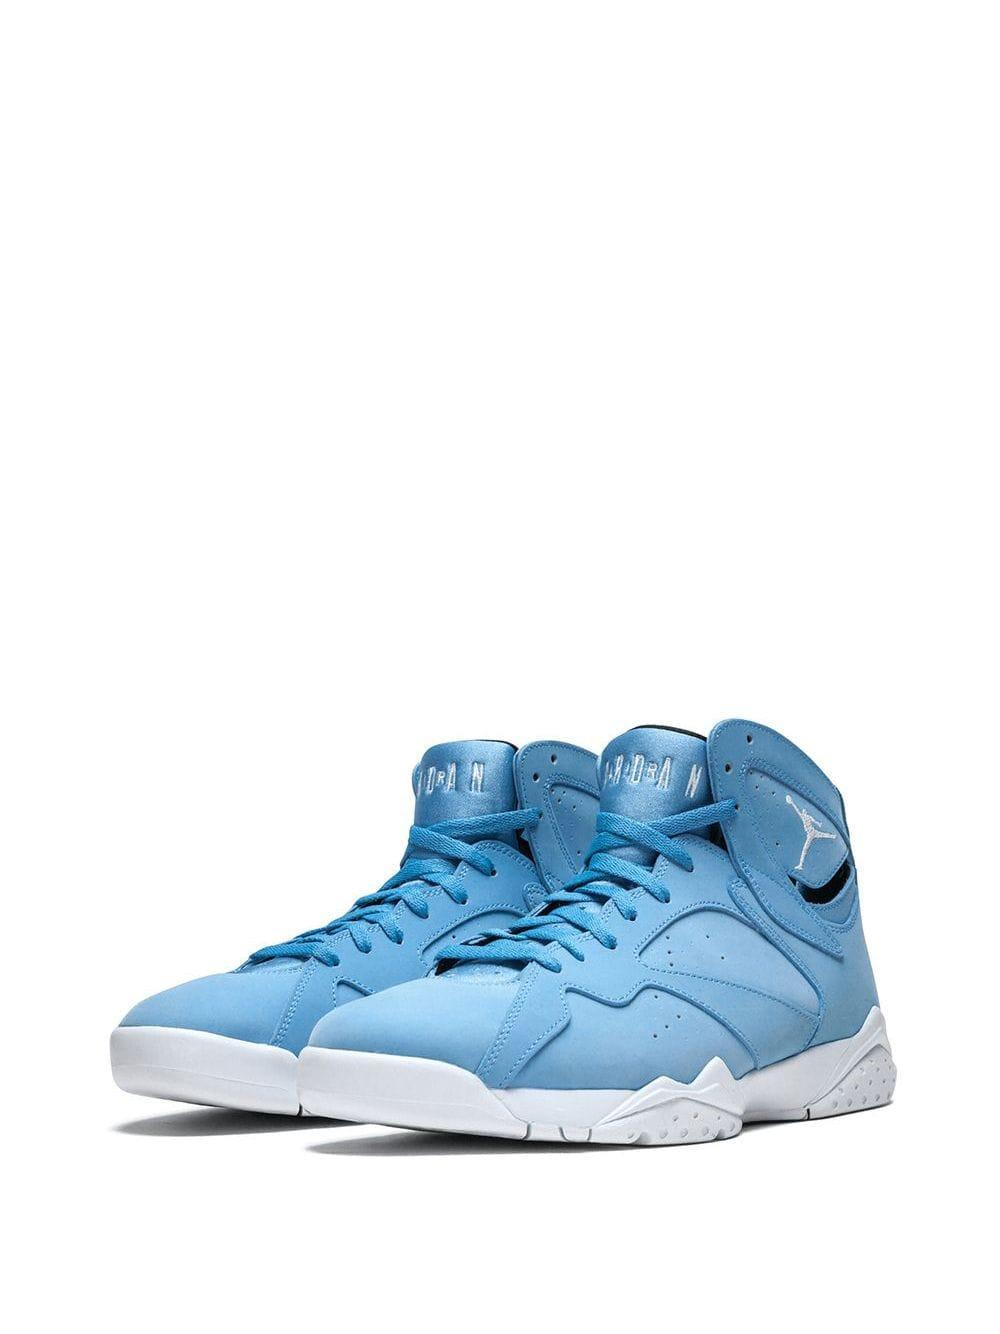 Nike Leather Air 7 Retro Sneakers in Blue for Men